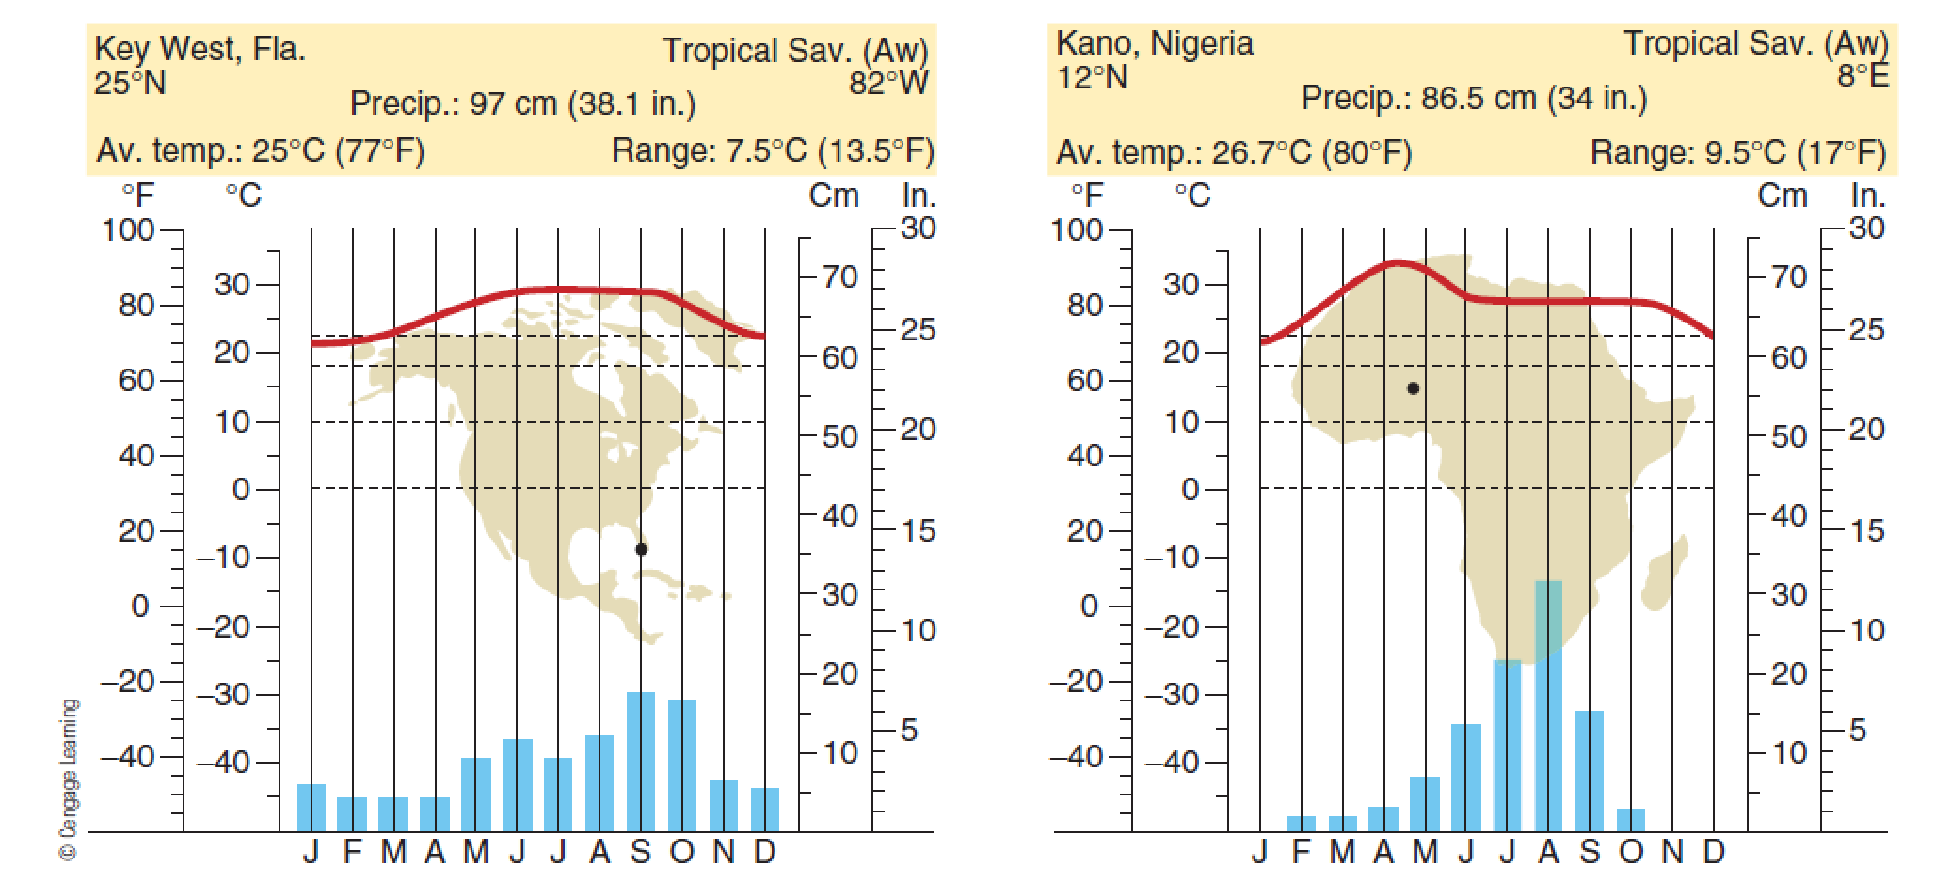 Chapter 7, Problem 14FQ, FIGURE 7.14 Climographs for tropical savanna climate stations. Consider the differences in climate